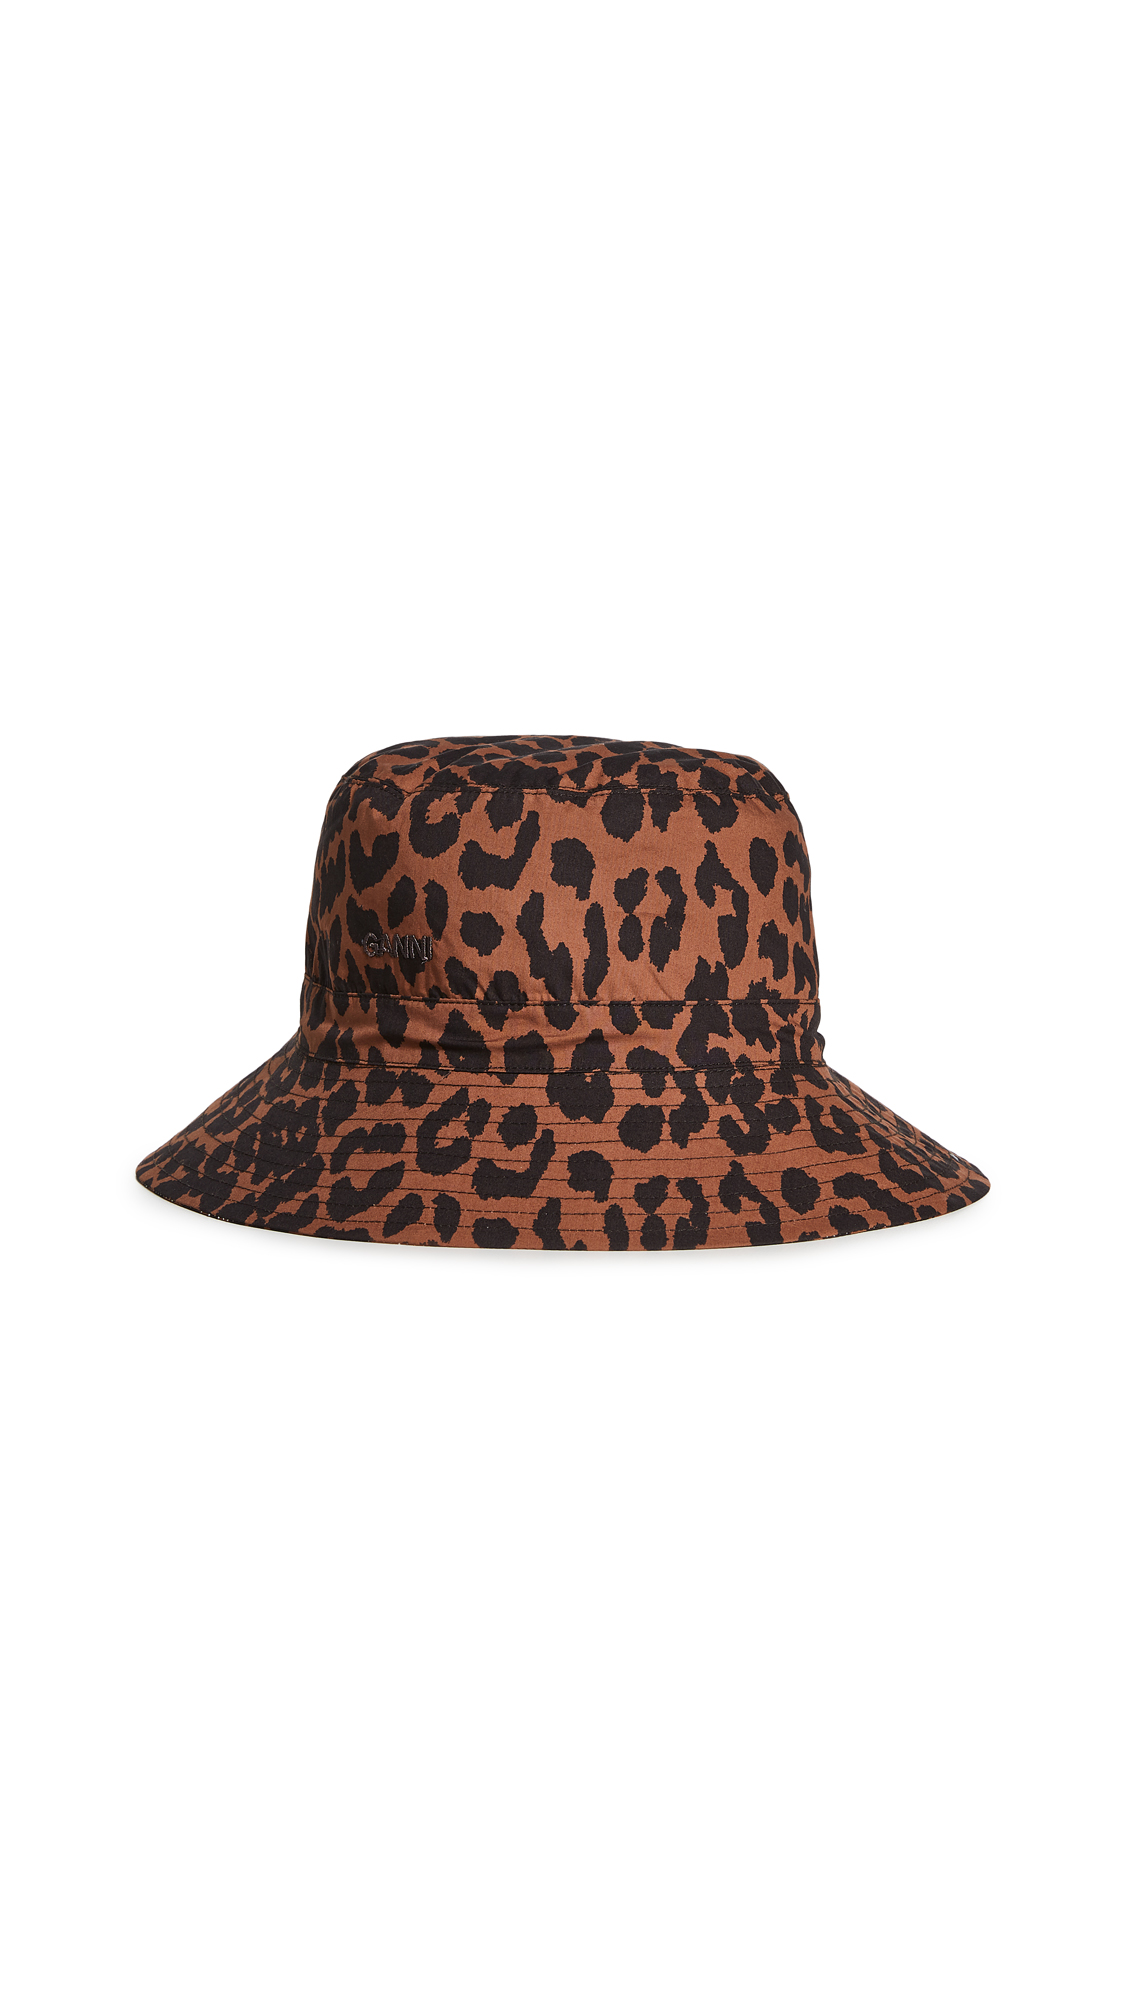 GANNI Printed Toffee Bucket Hat